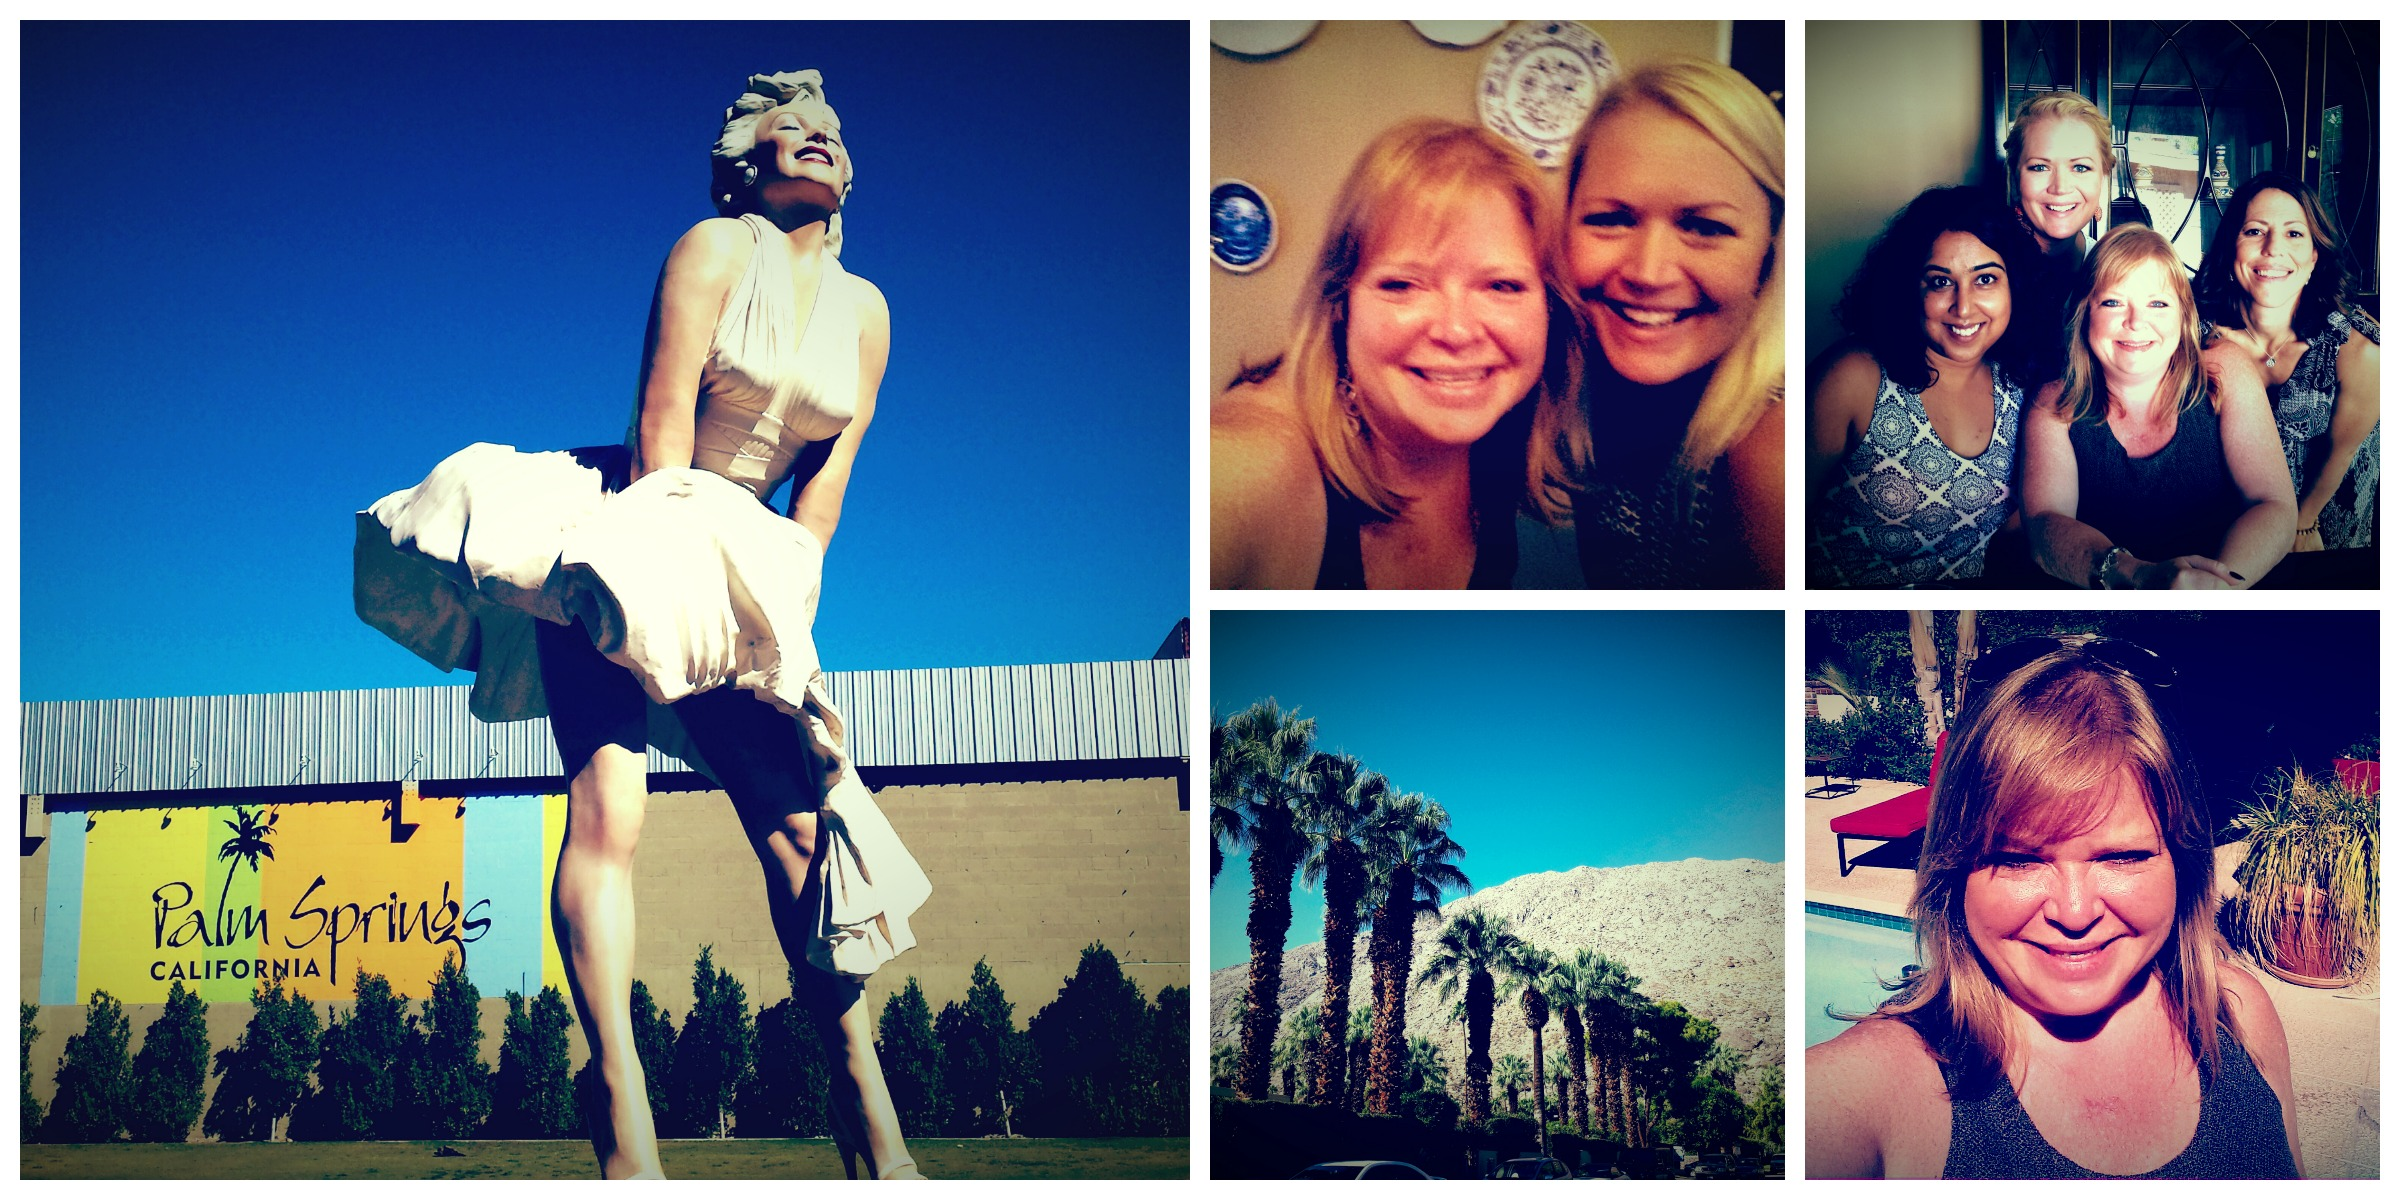 Palm Springs Collage